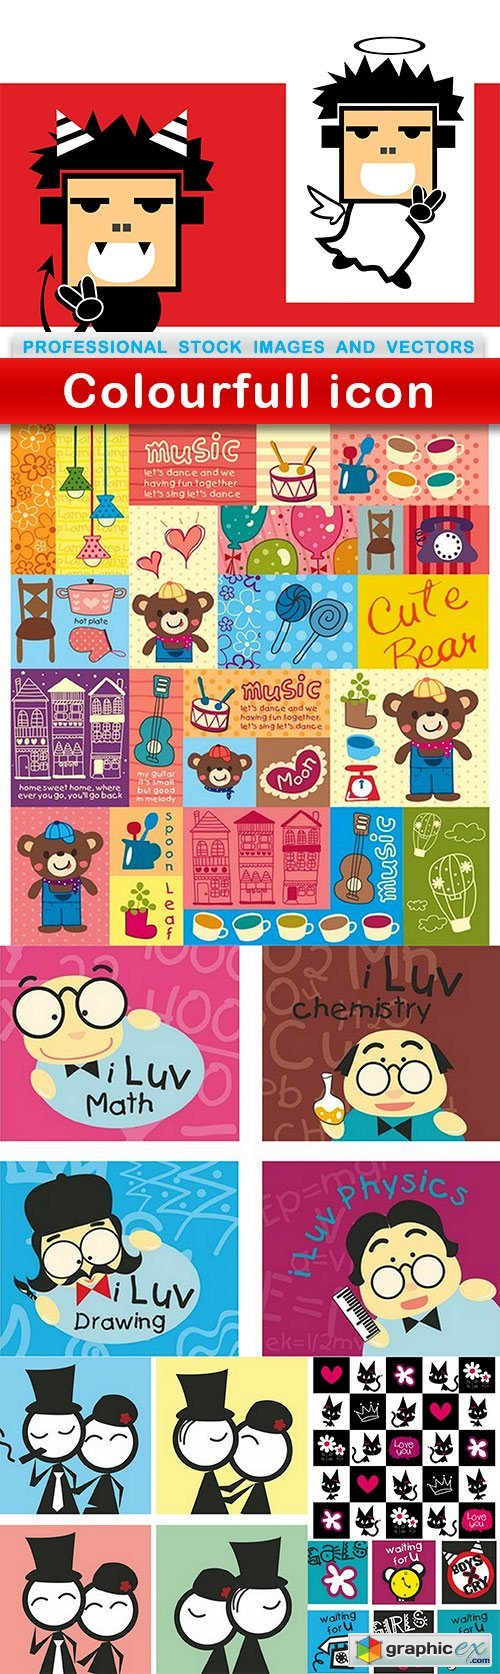 Colourfull icon - 6 EPS